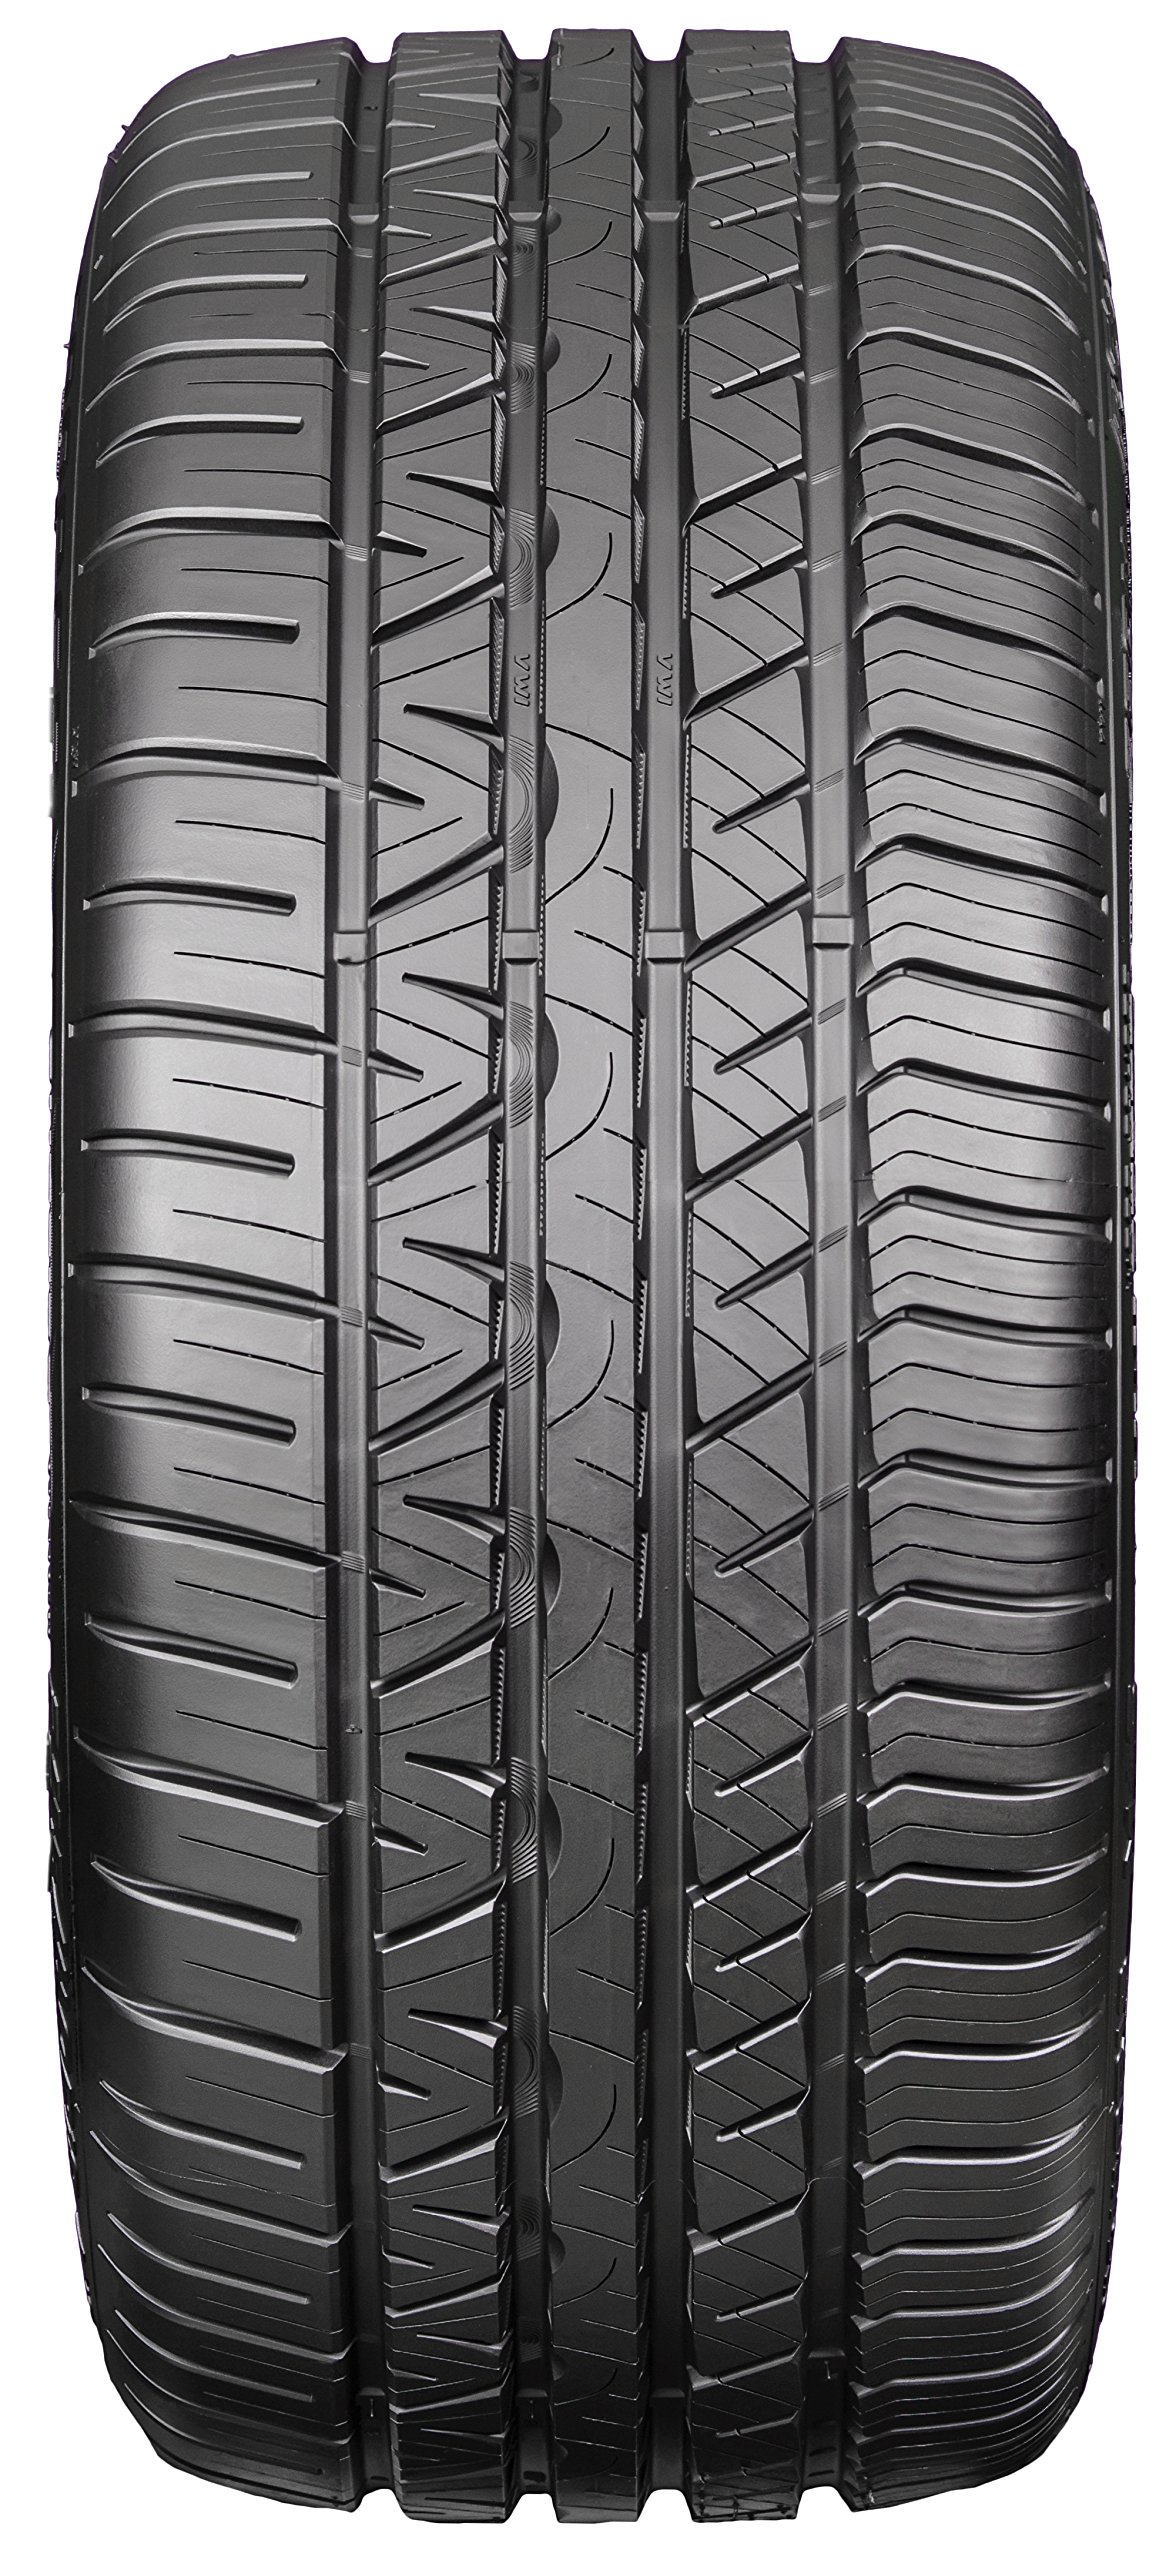 Cooper Tires Zeon RS3-G1 Performance Radial Tire - 215/45R17 91W by Cooper Tire (Image #1)